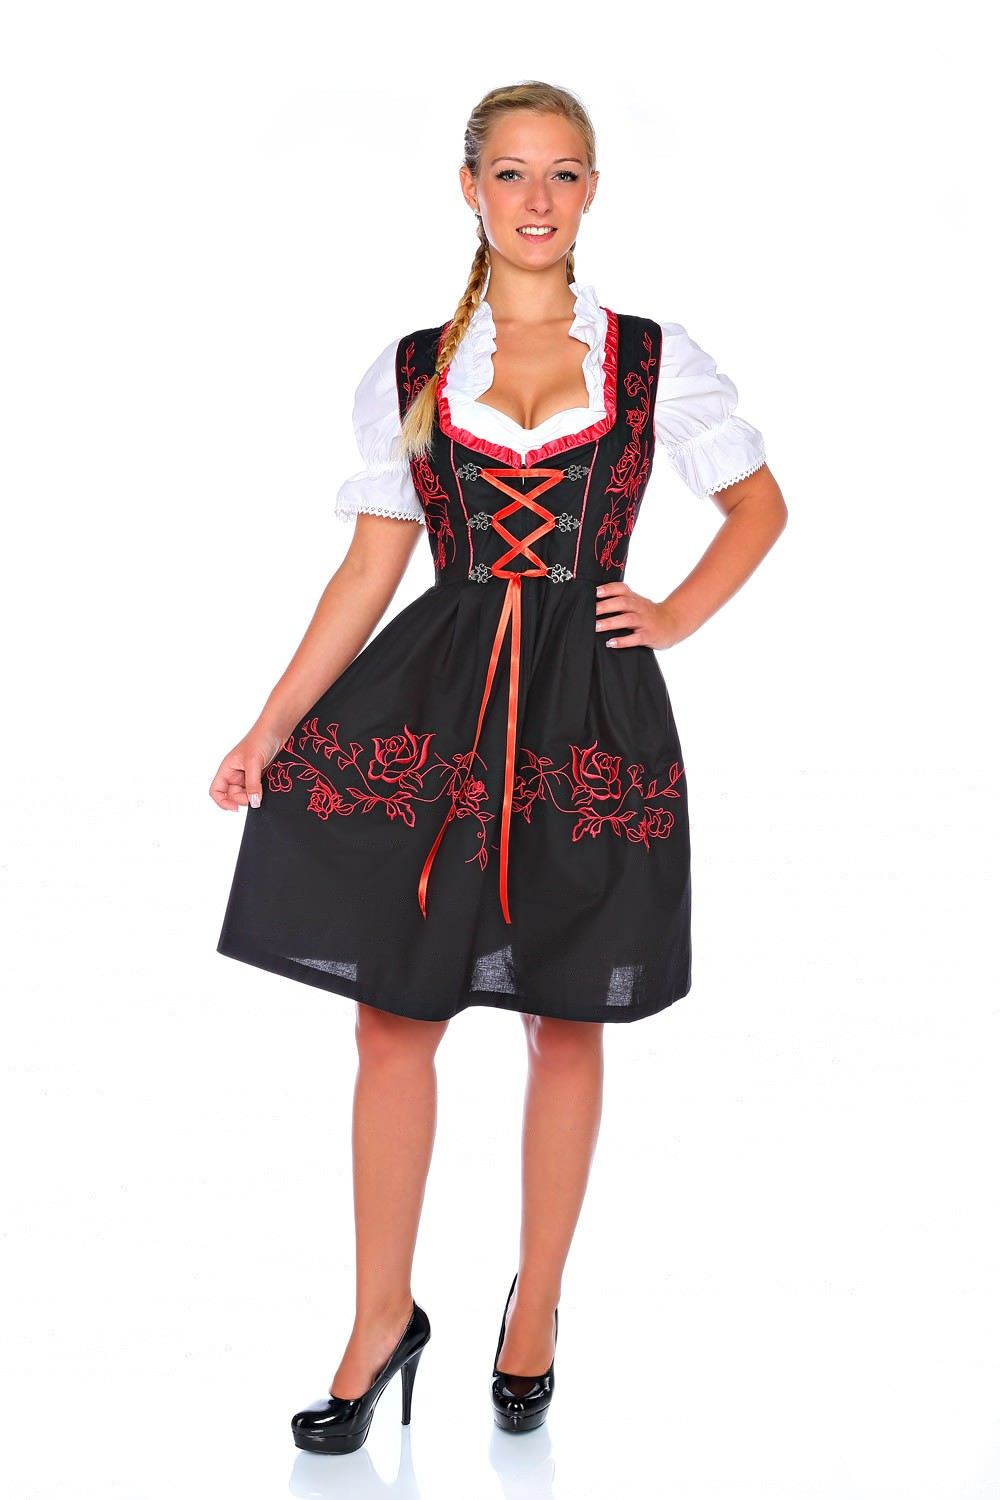 dirndl damen unter 40 euro beste dirndl damen informationen. Black Bedroom Furniture Sets. Home Design Ideas